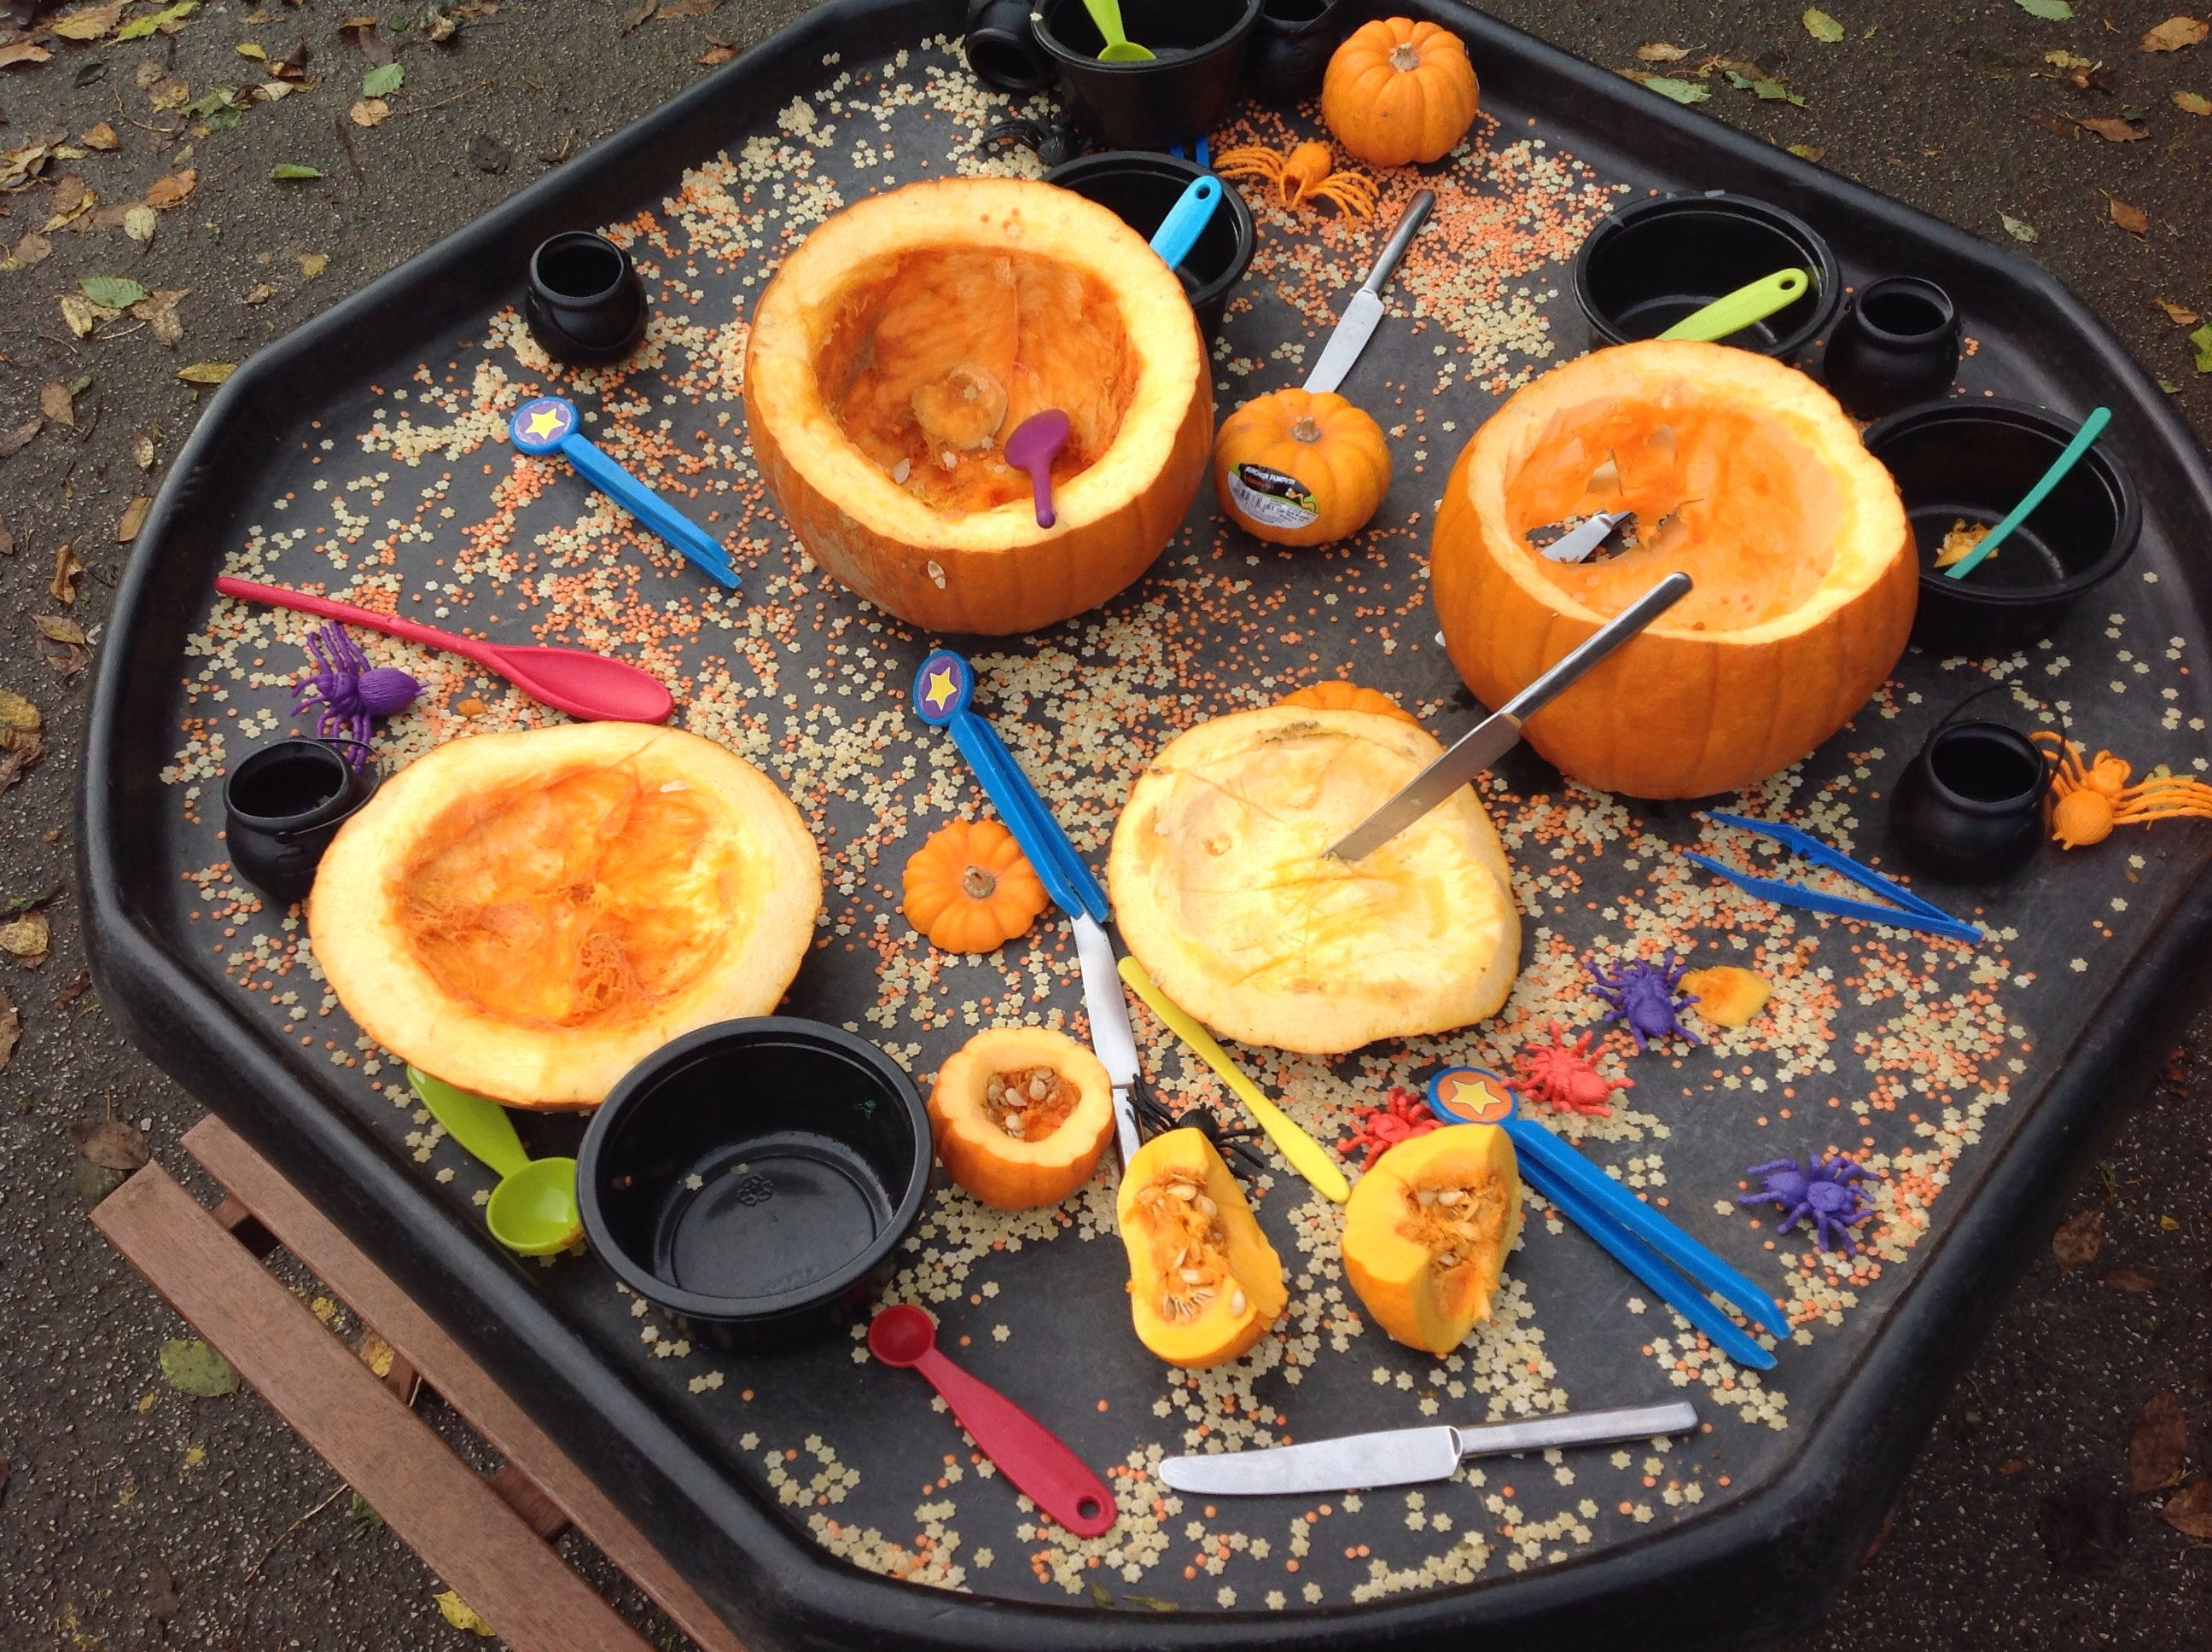 Exploring Pumpkins With Different Tools By Shawbo